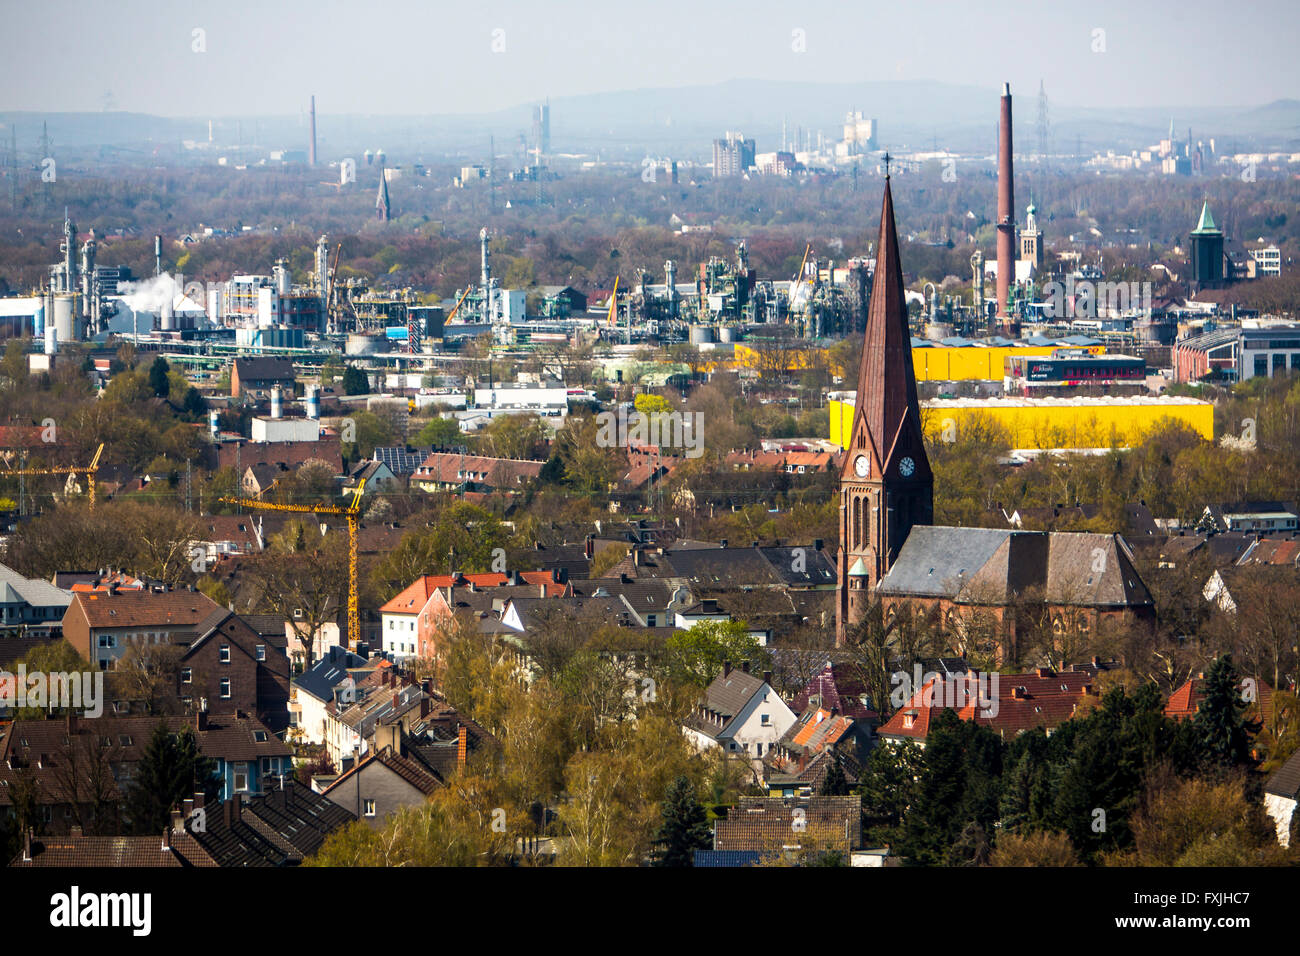 Overlooking Herne Gelsenkirchen, in the middle of Chemical Works of Evonik Industries AG in Herne, Front St. Francis - Stock Image